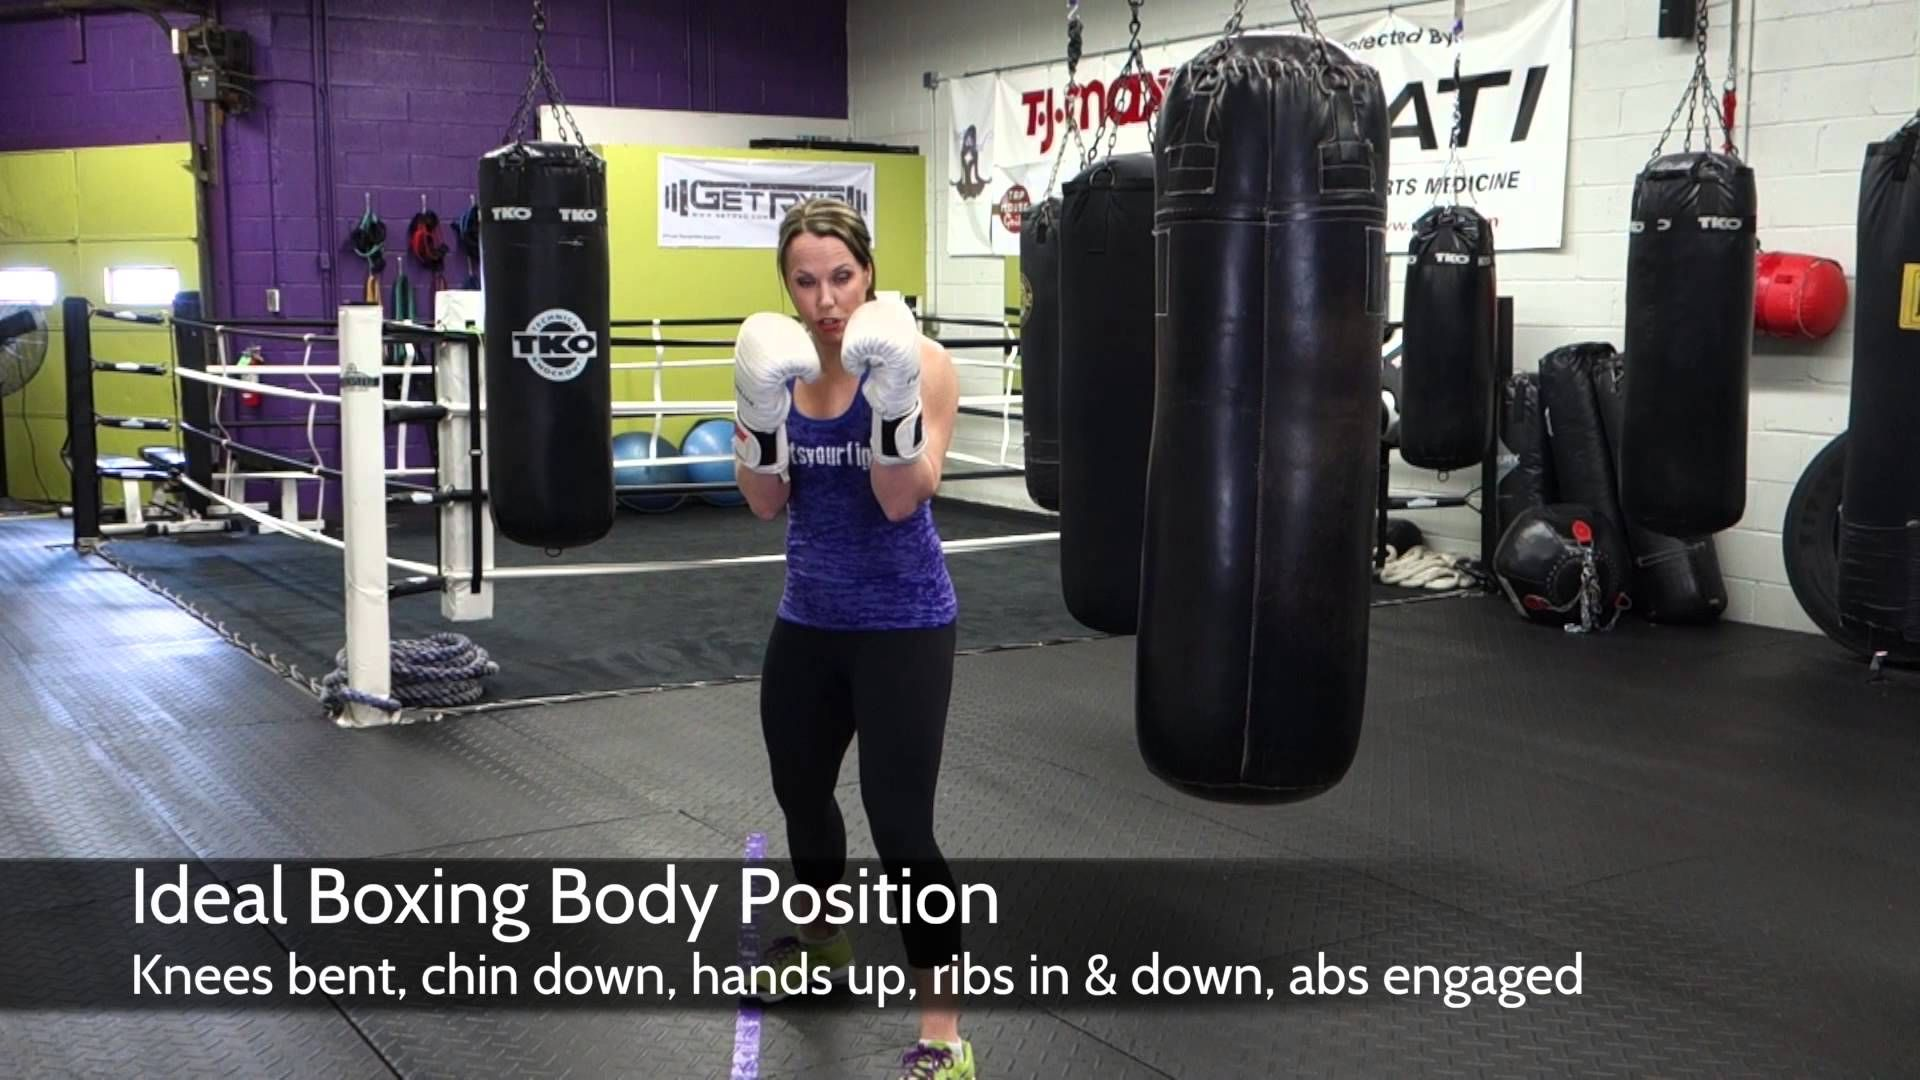 3 25 14 Knockout Tip Tuesday Body Position Body Excercise Boxing Club